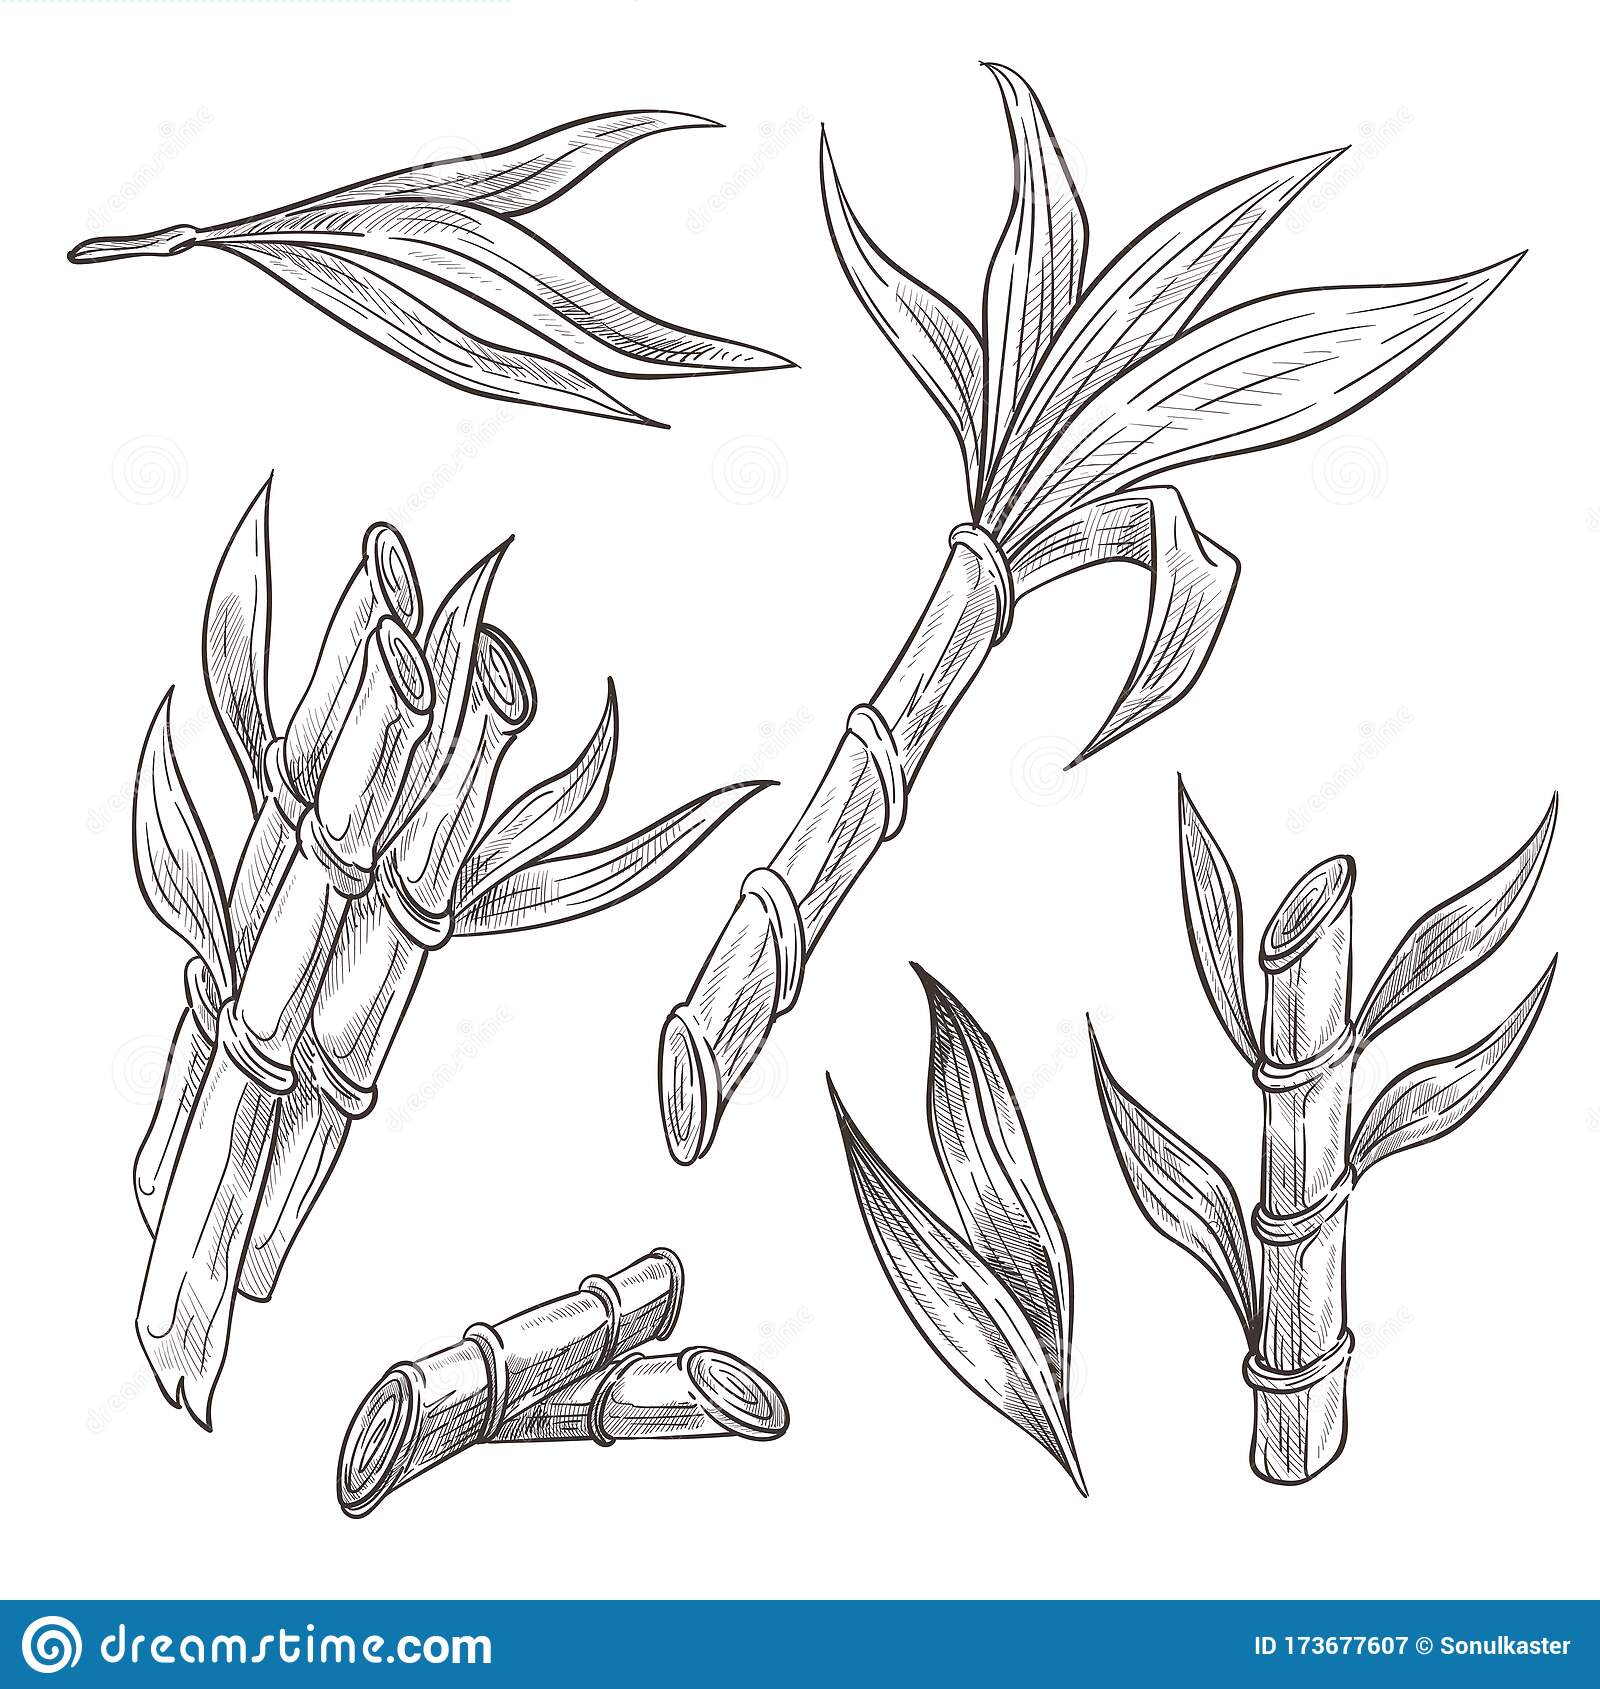 Bamboo Logs With Leaves Hand Drawn Sketch Illustrations Set Stock Vector Illustration Of Japanese Design 173677607